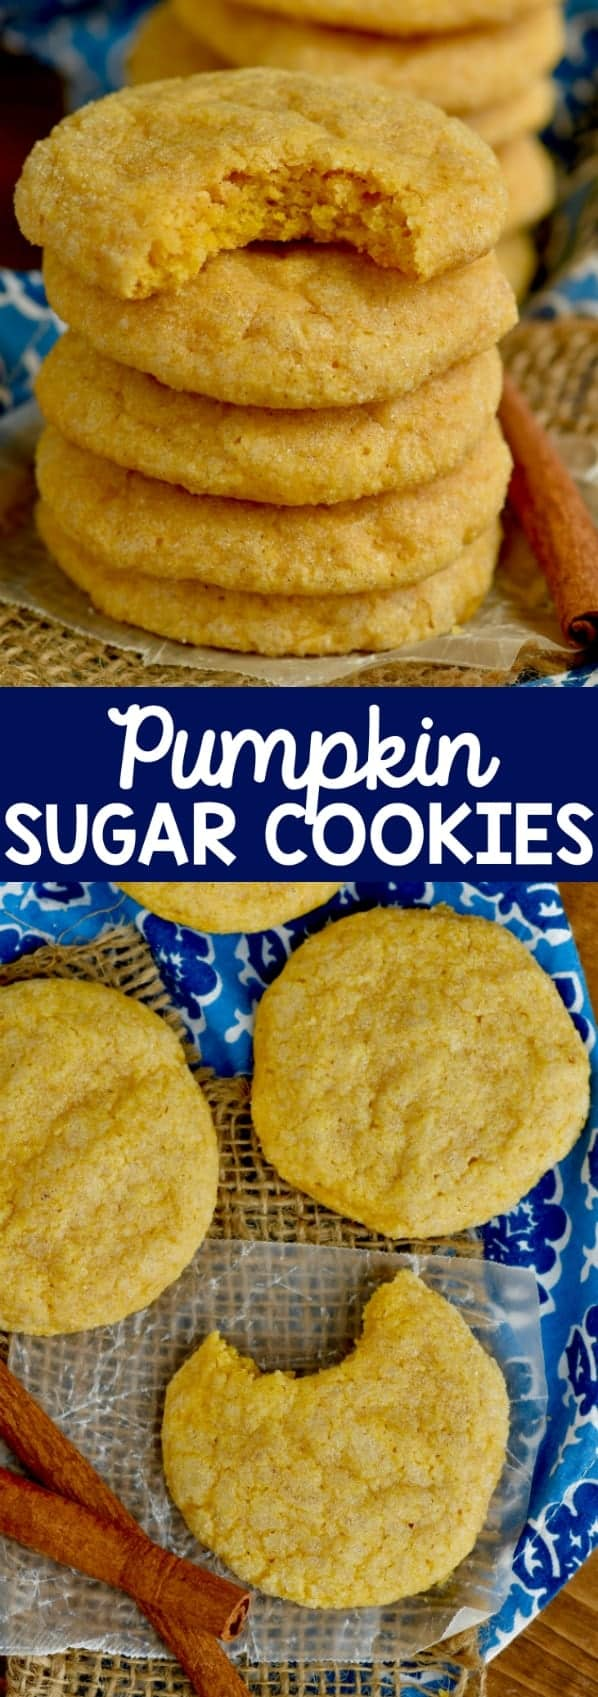 These Pumpkin Sugar Cookies are absolutely amazing!  Deliciously soft and full of pumpkin fall flavor!  Bound to become a family favorite!